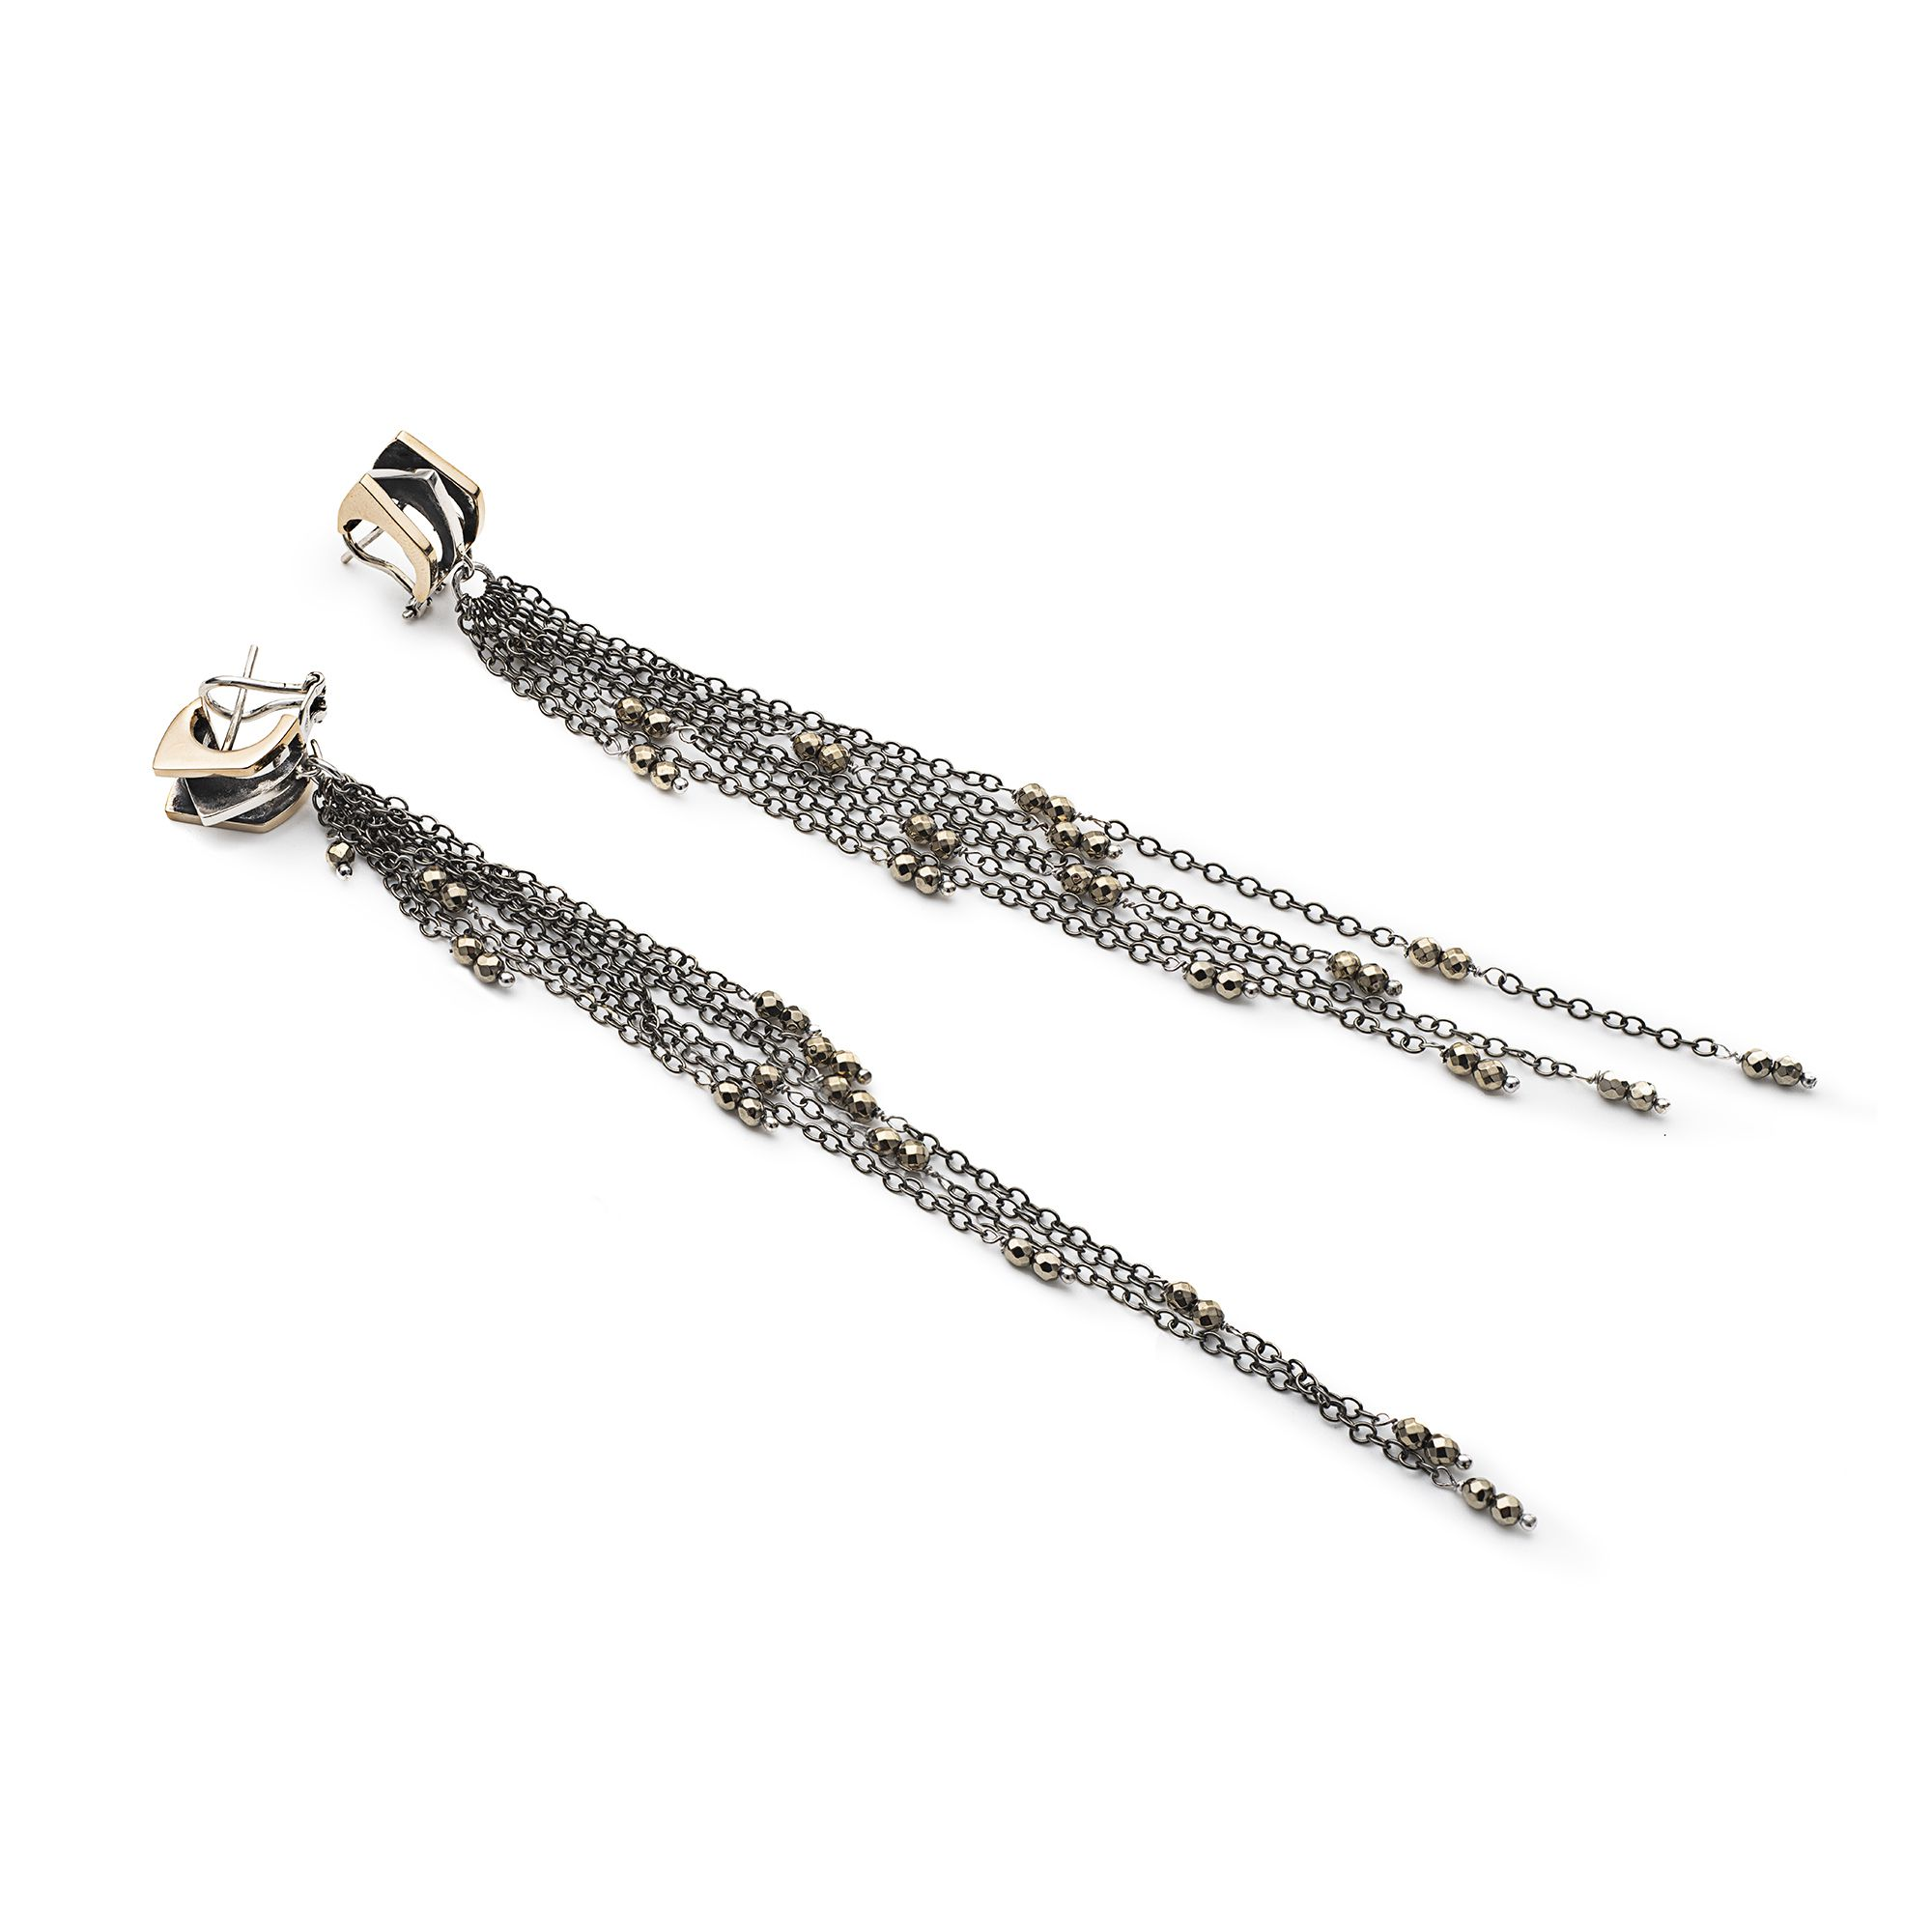 3 element 'Congiunzioni' earrings with fringes Silver and bronze earrings with long fringes